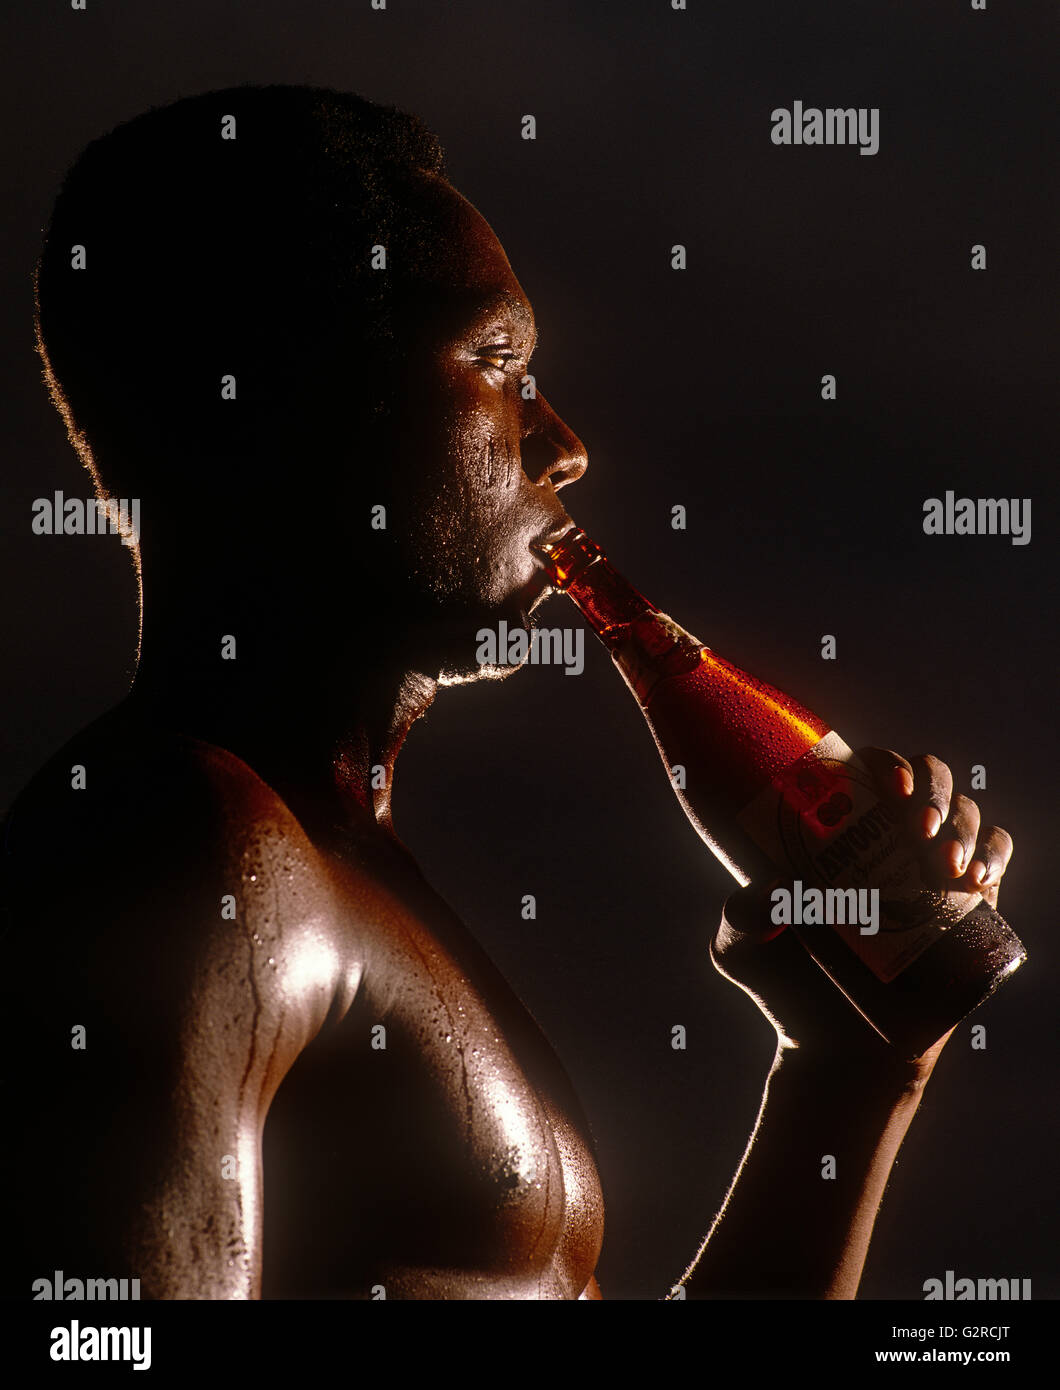 A man drinking a bottle of alcohol, indoors. - Stock Image